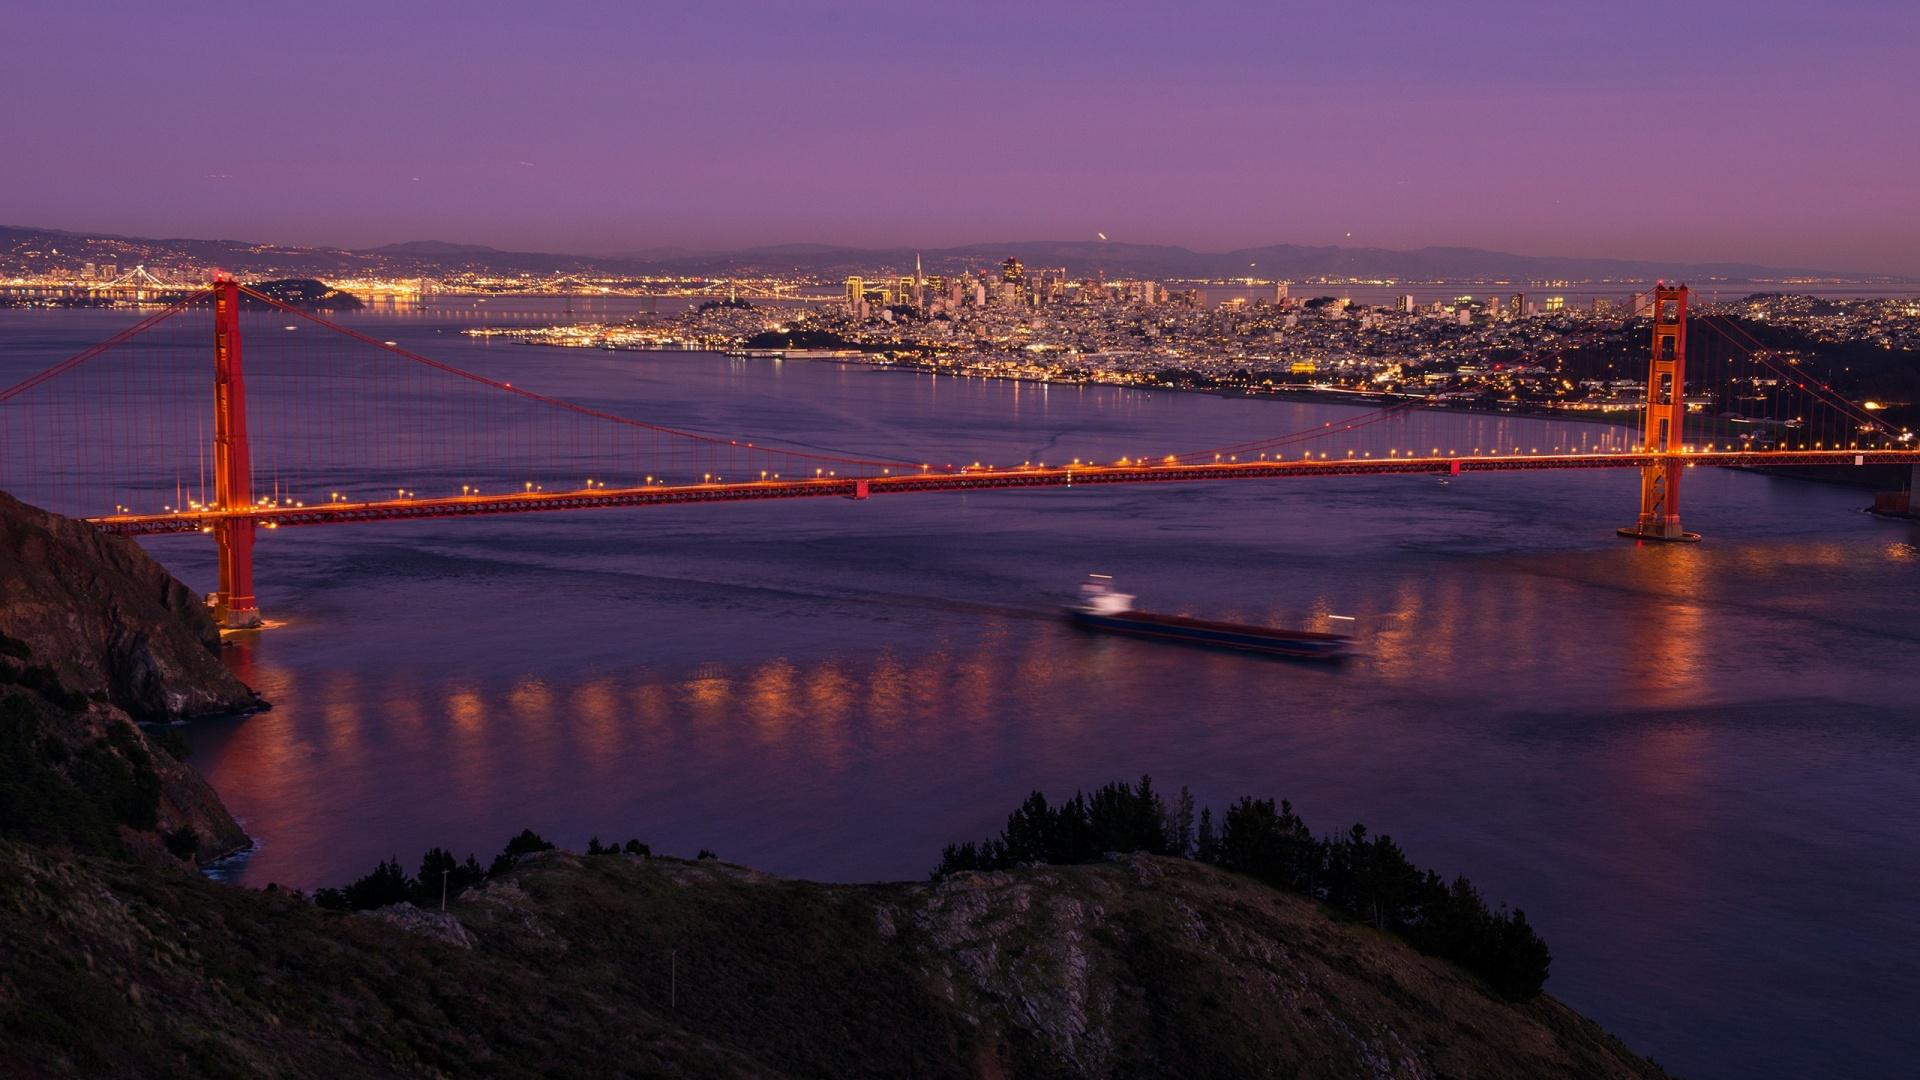 San francisco bay   109759   High Quality and Resolution Wallpapers 1920x1080